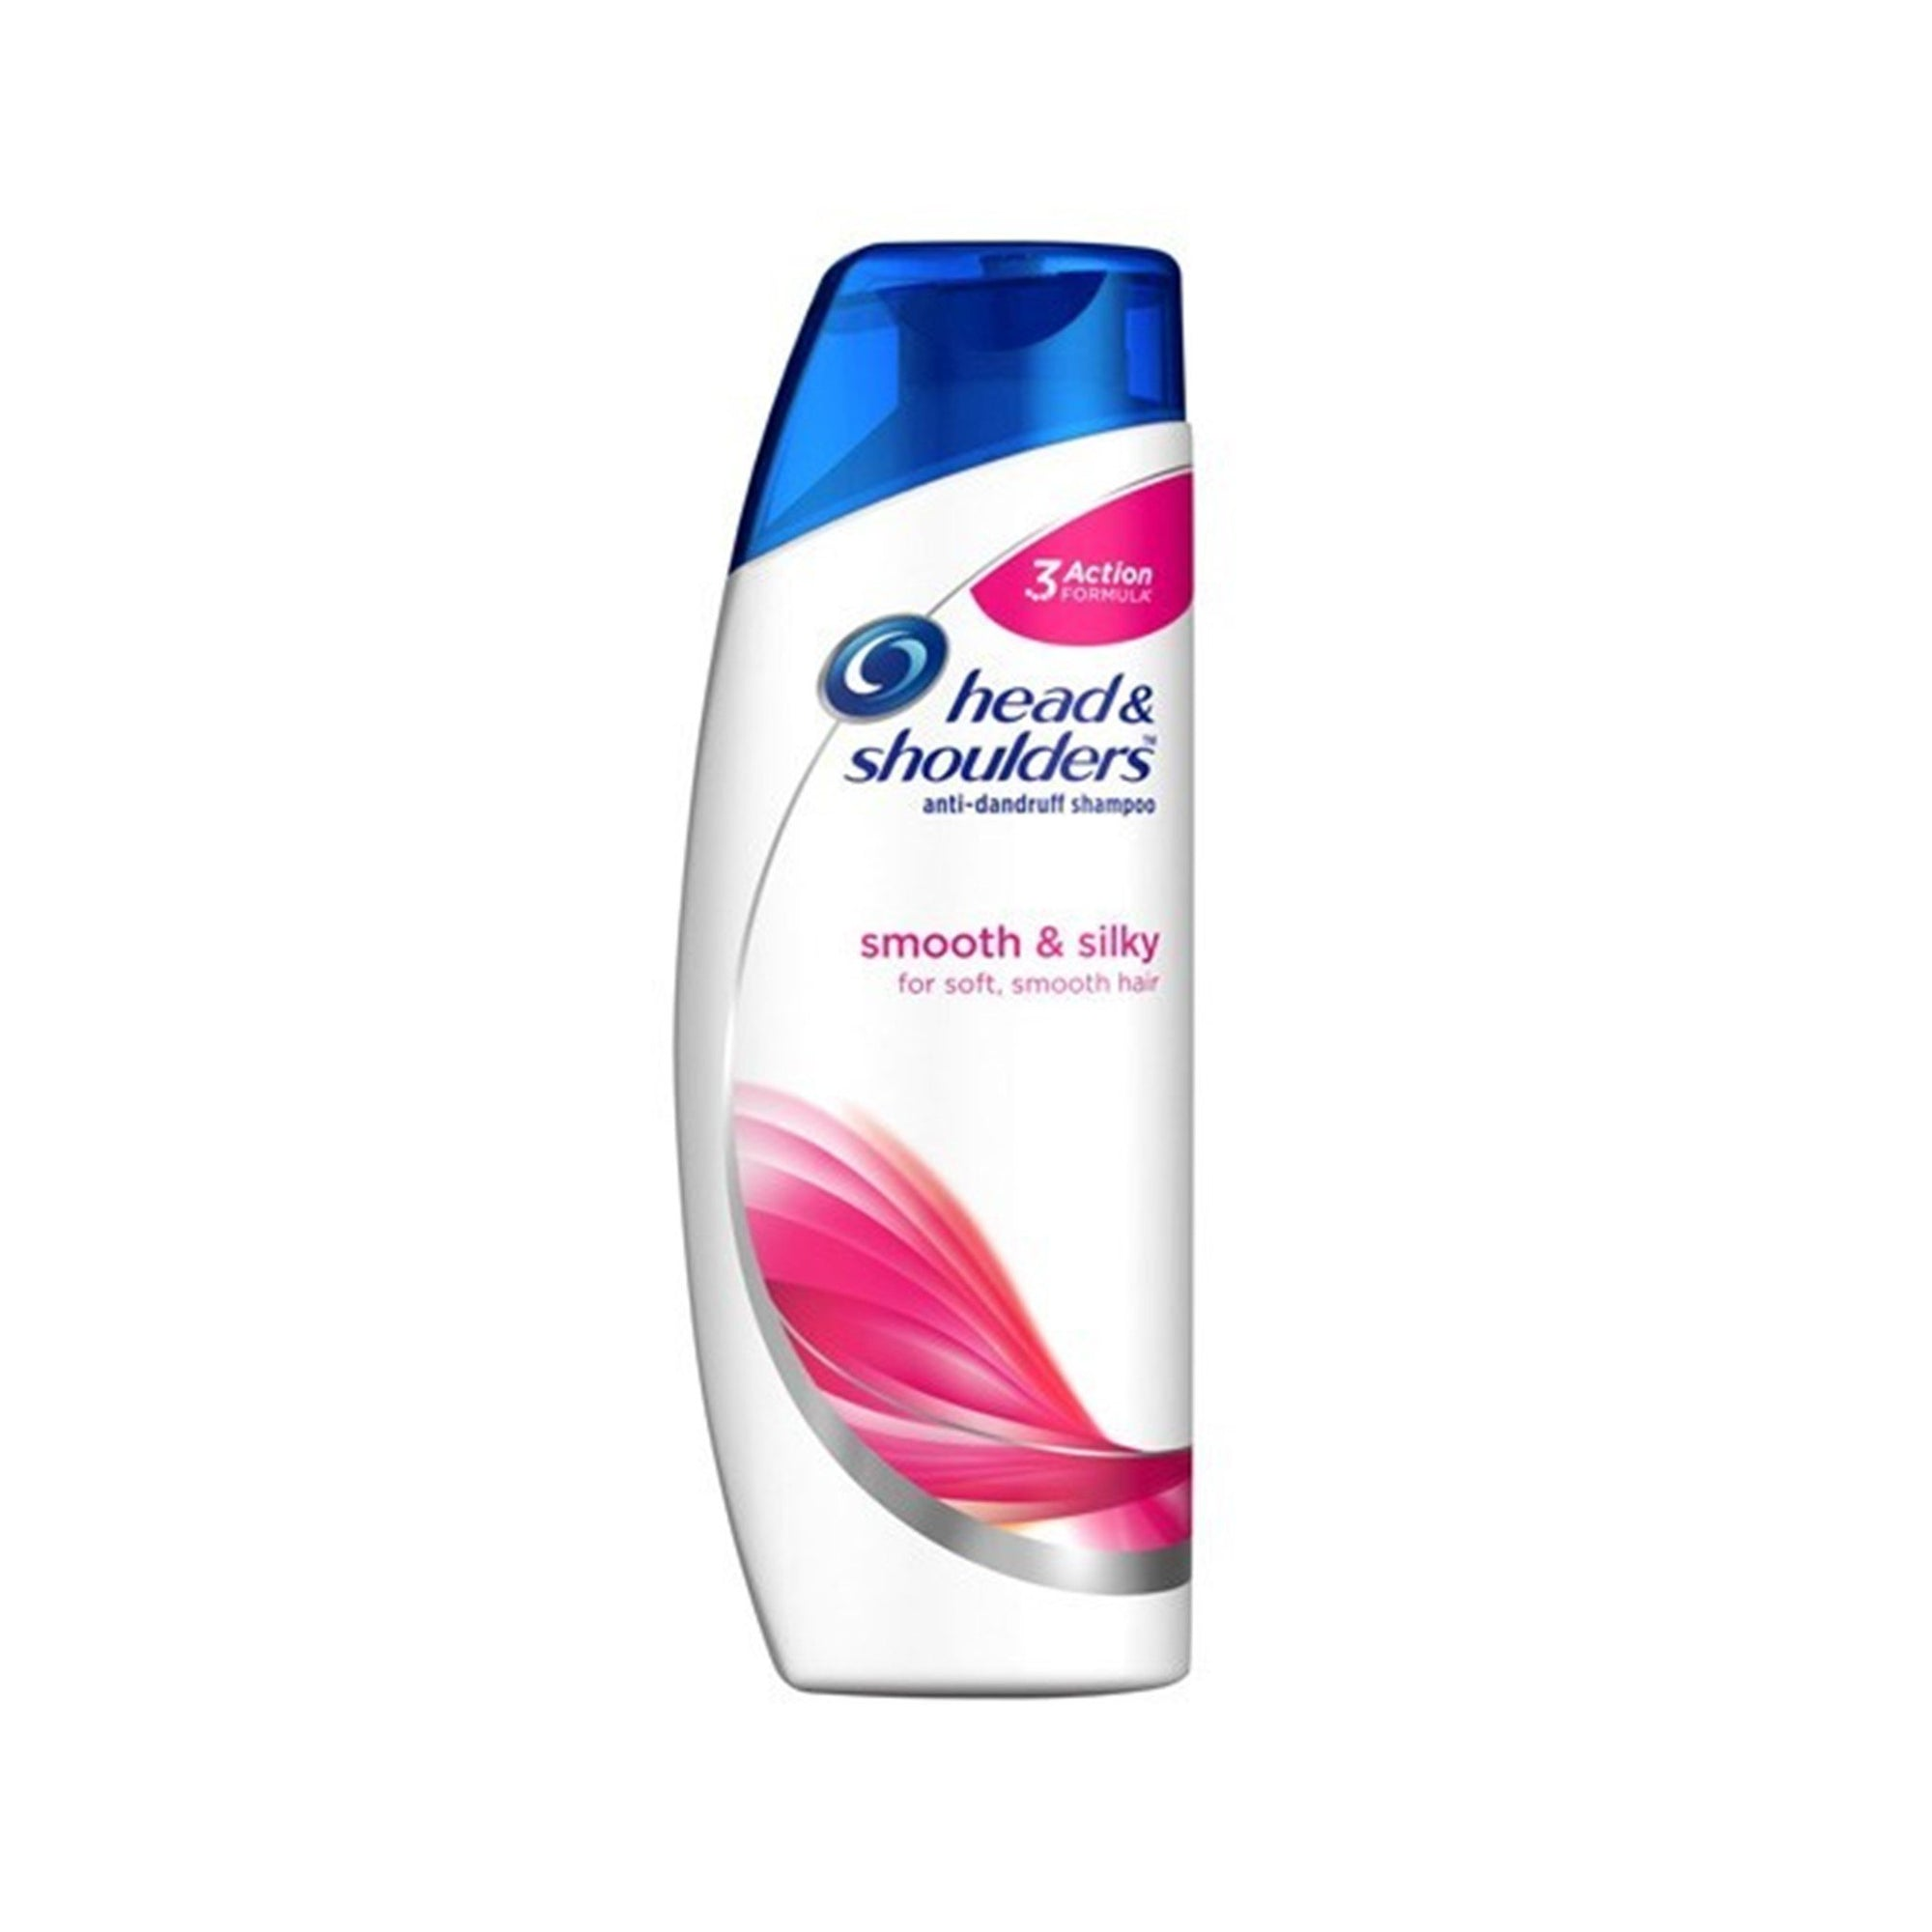 Head & Shoulders Shampoo Smooth & Silky 170ml